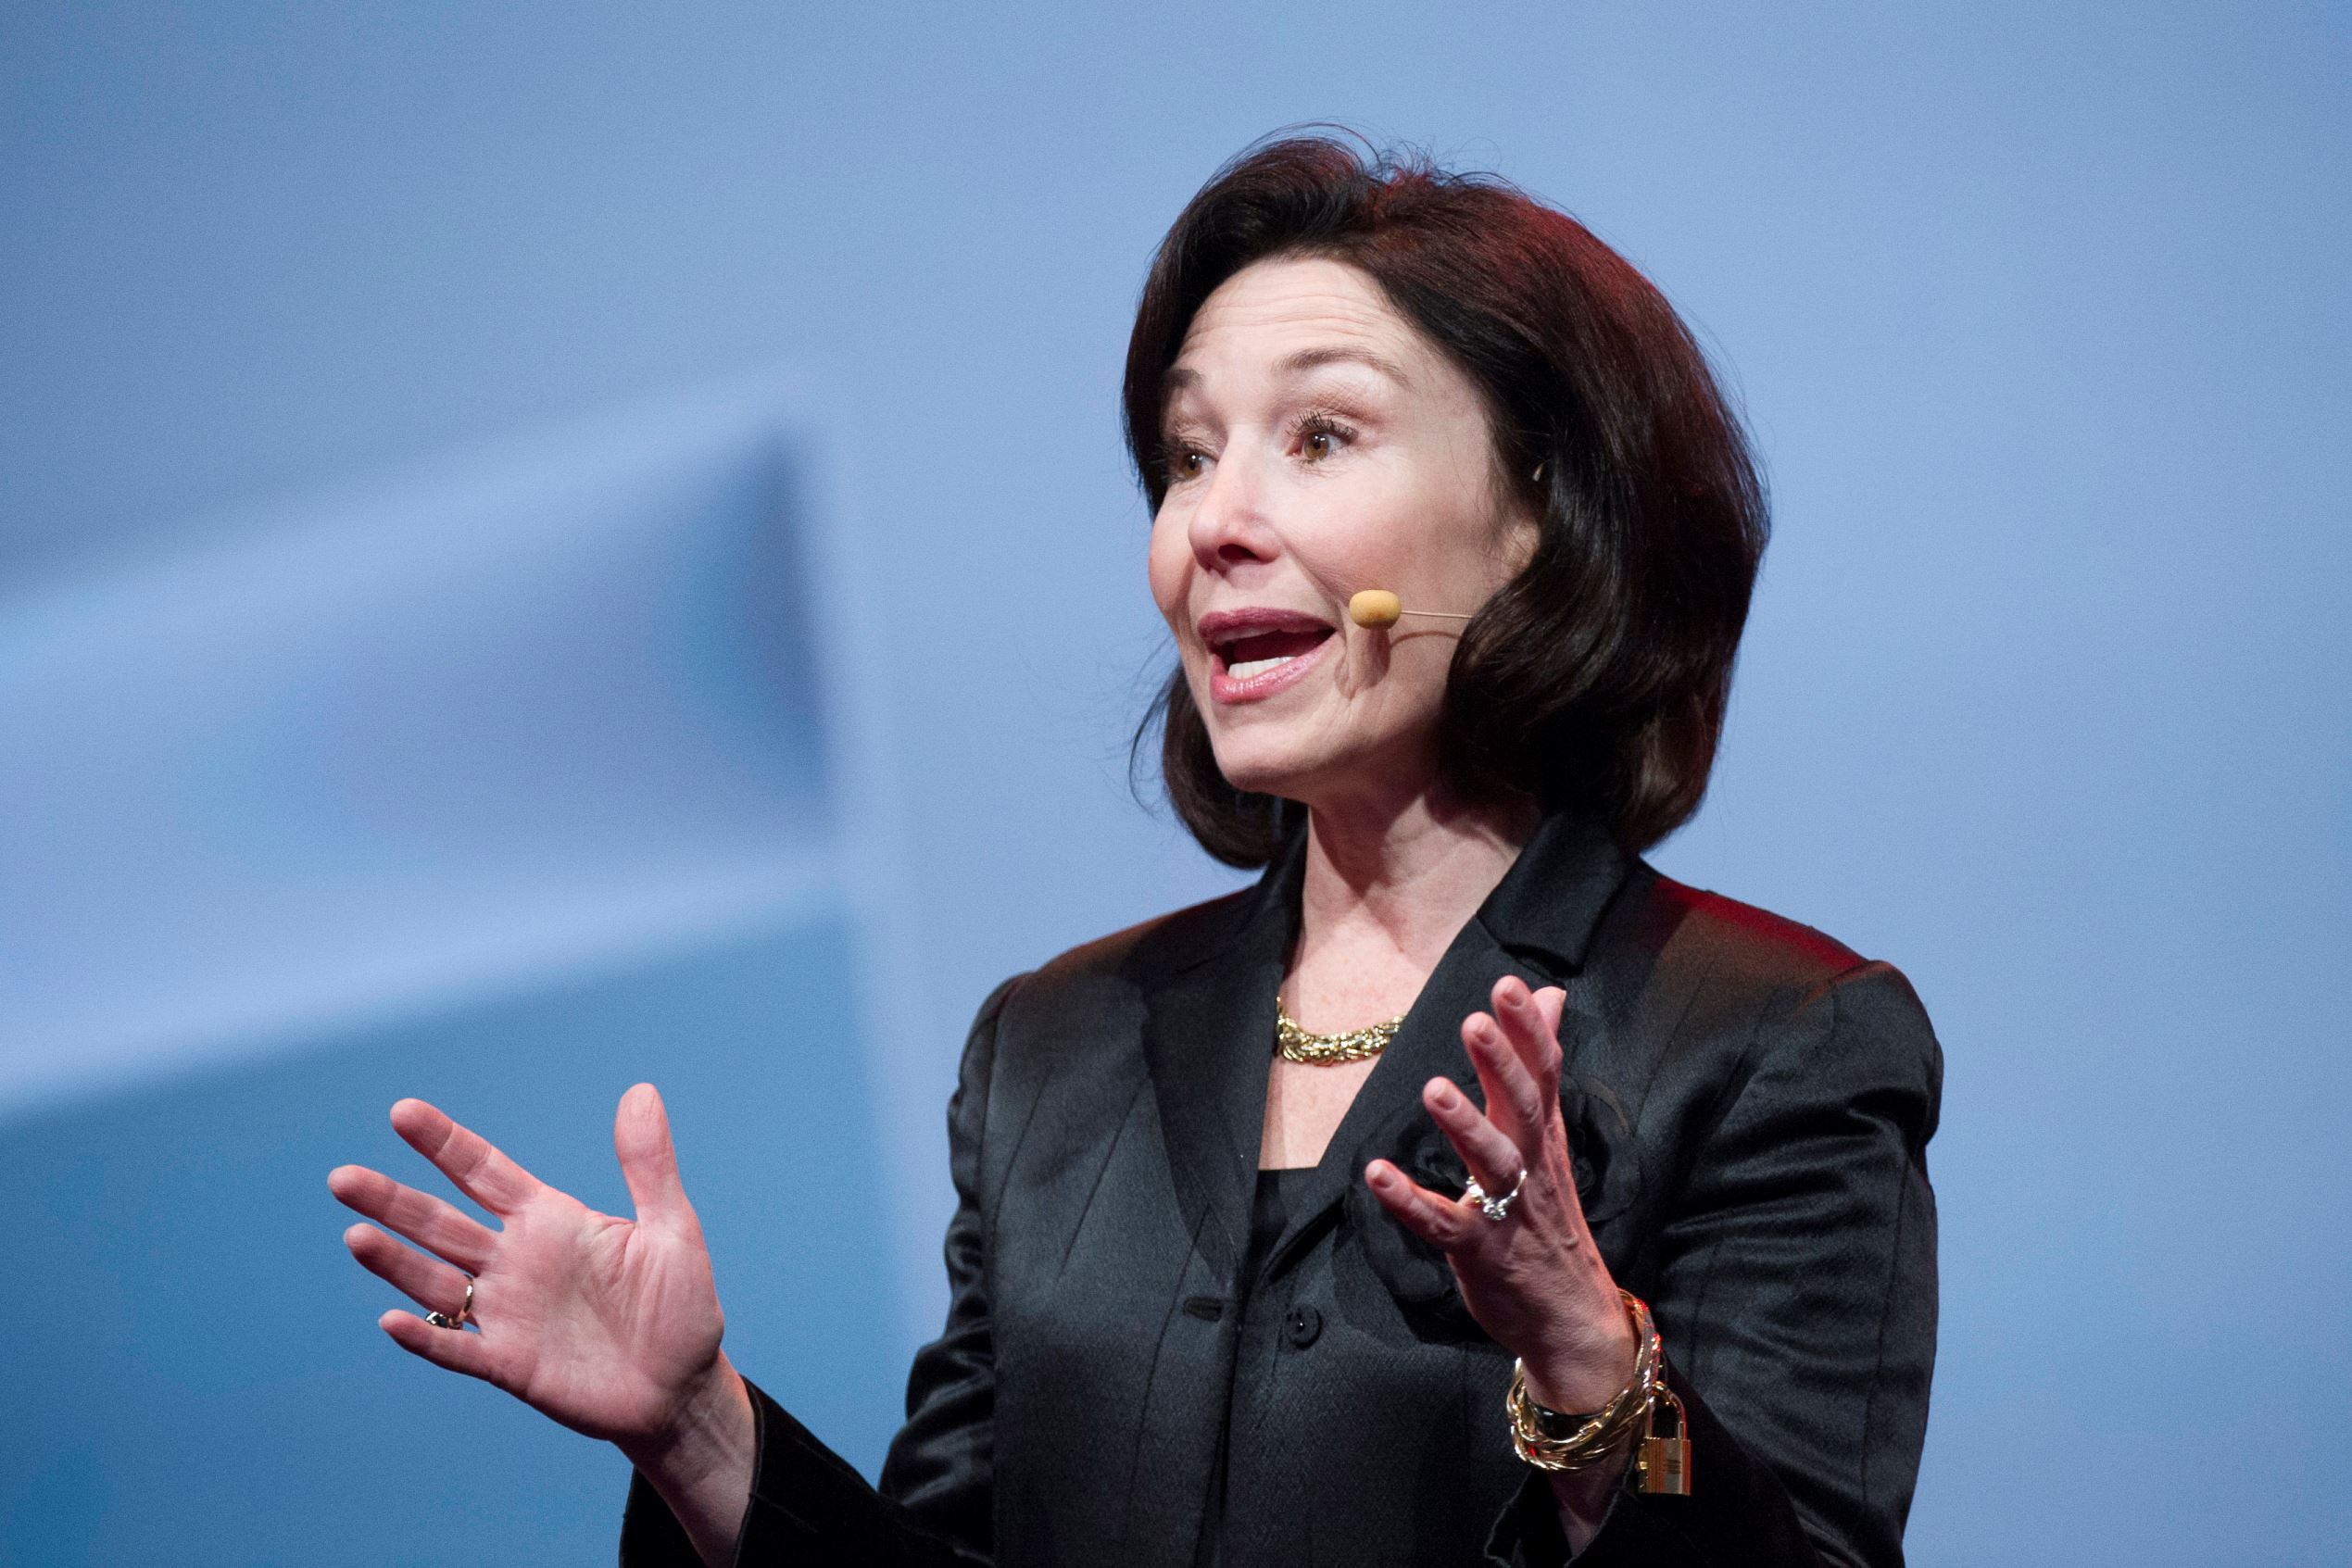 Safra Catz, co-chief executive officer of Oracle Corp., speaks during the Oracle OpenWorld 2014 conference in San Francisco in 2014.